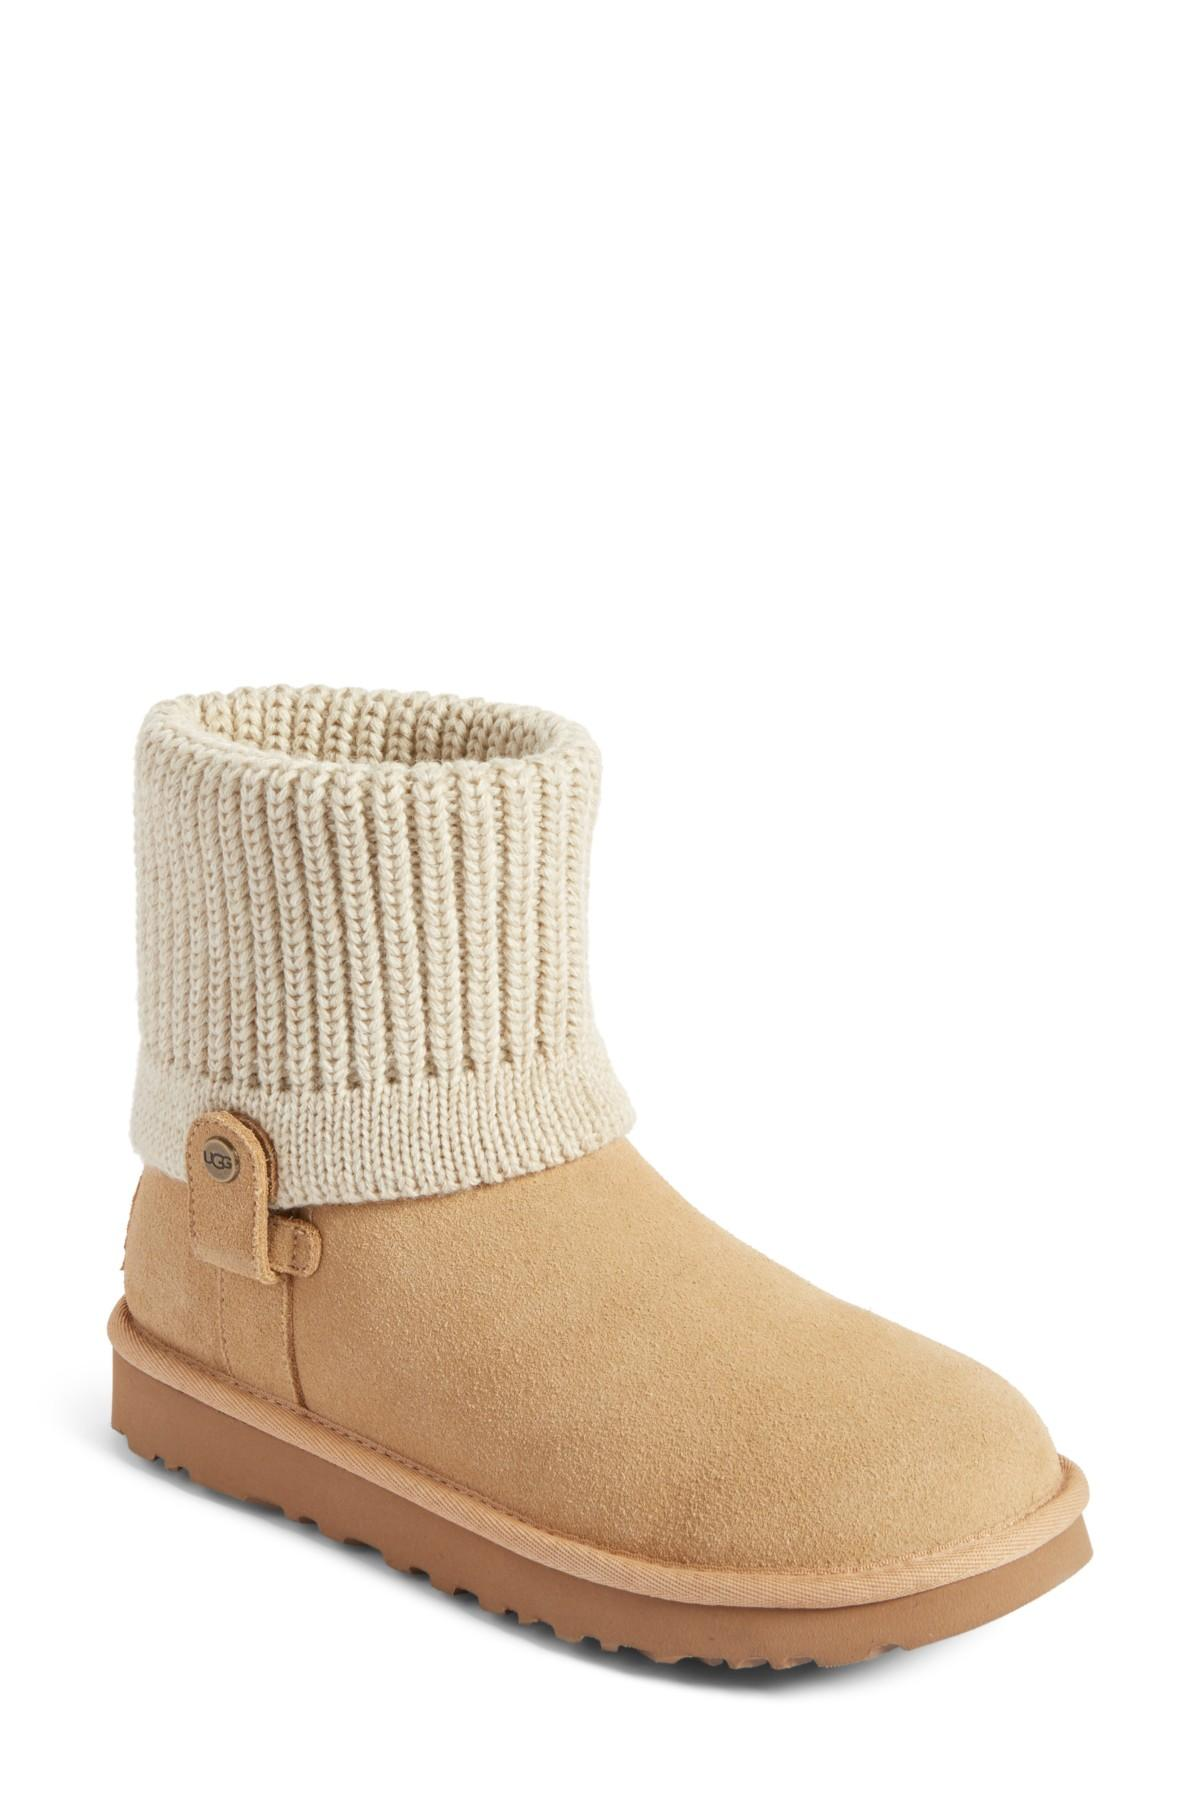 d5db92105b4 UGG Saela Rib-knit Cuff Pure(tm) Lined Boot in Natural - Lyst